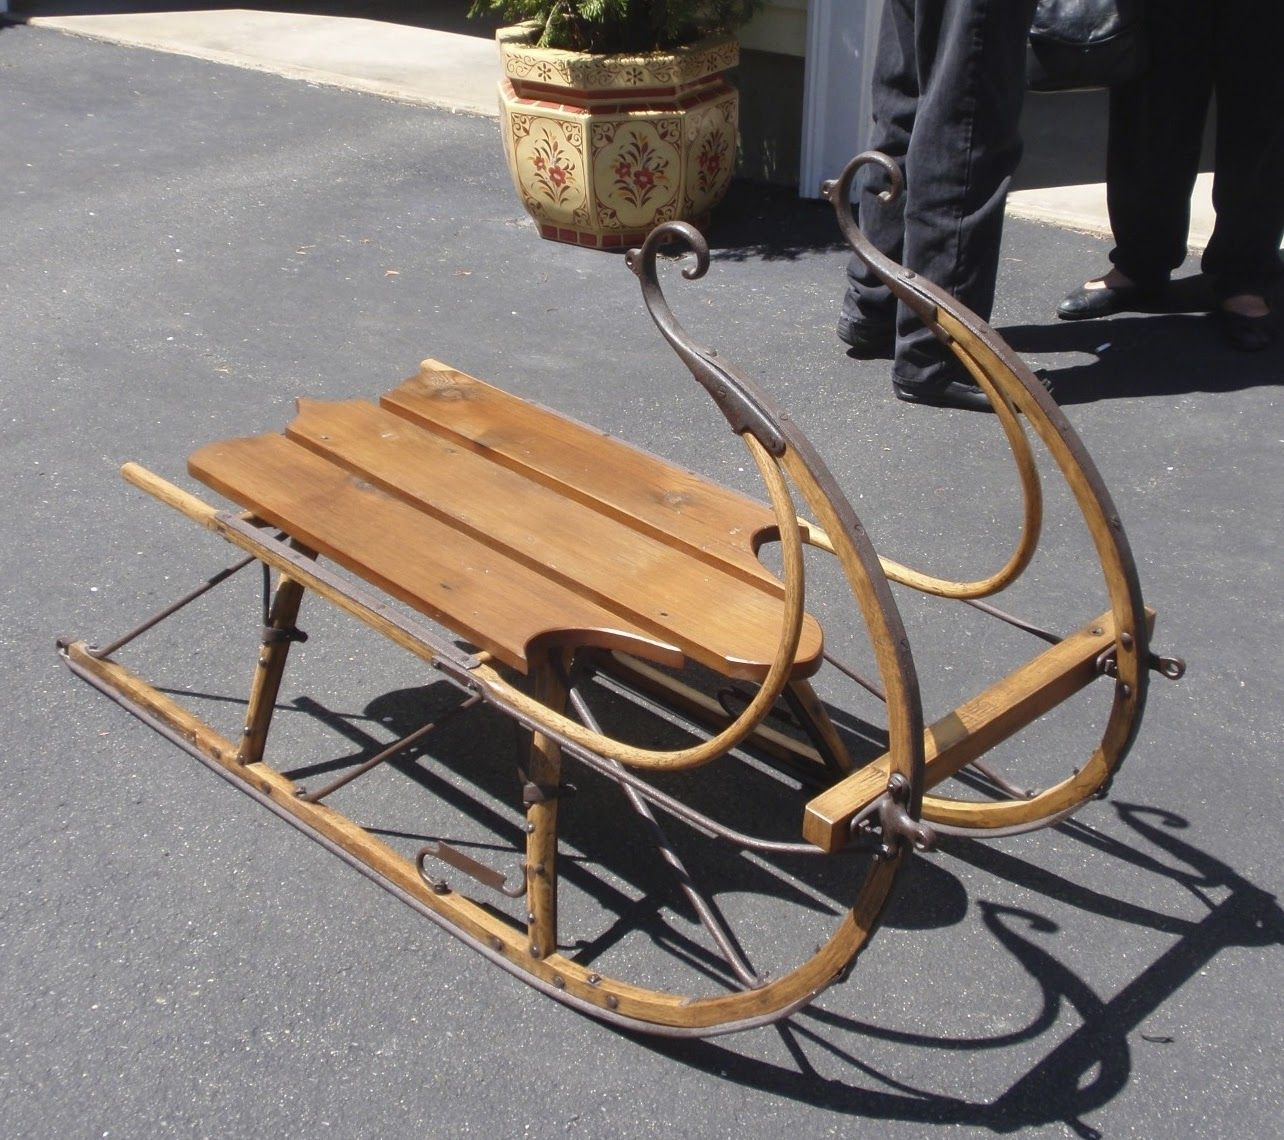 Sleigh Coffee Table Eagle Head Albany Cutter Train Model And Diy Craft Projects